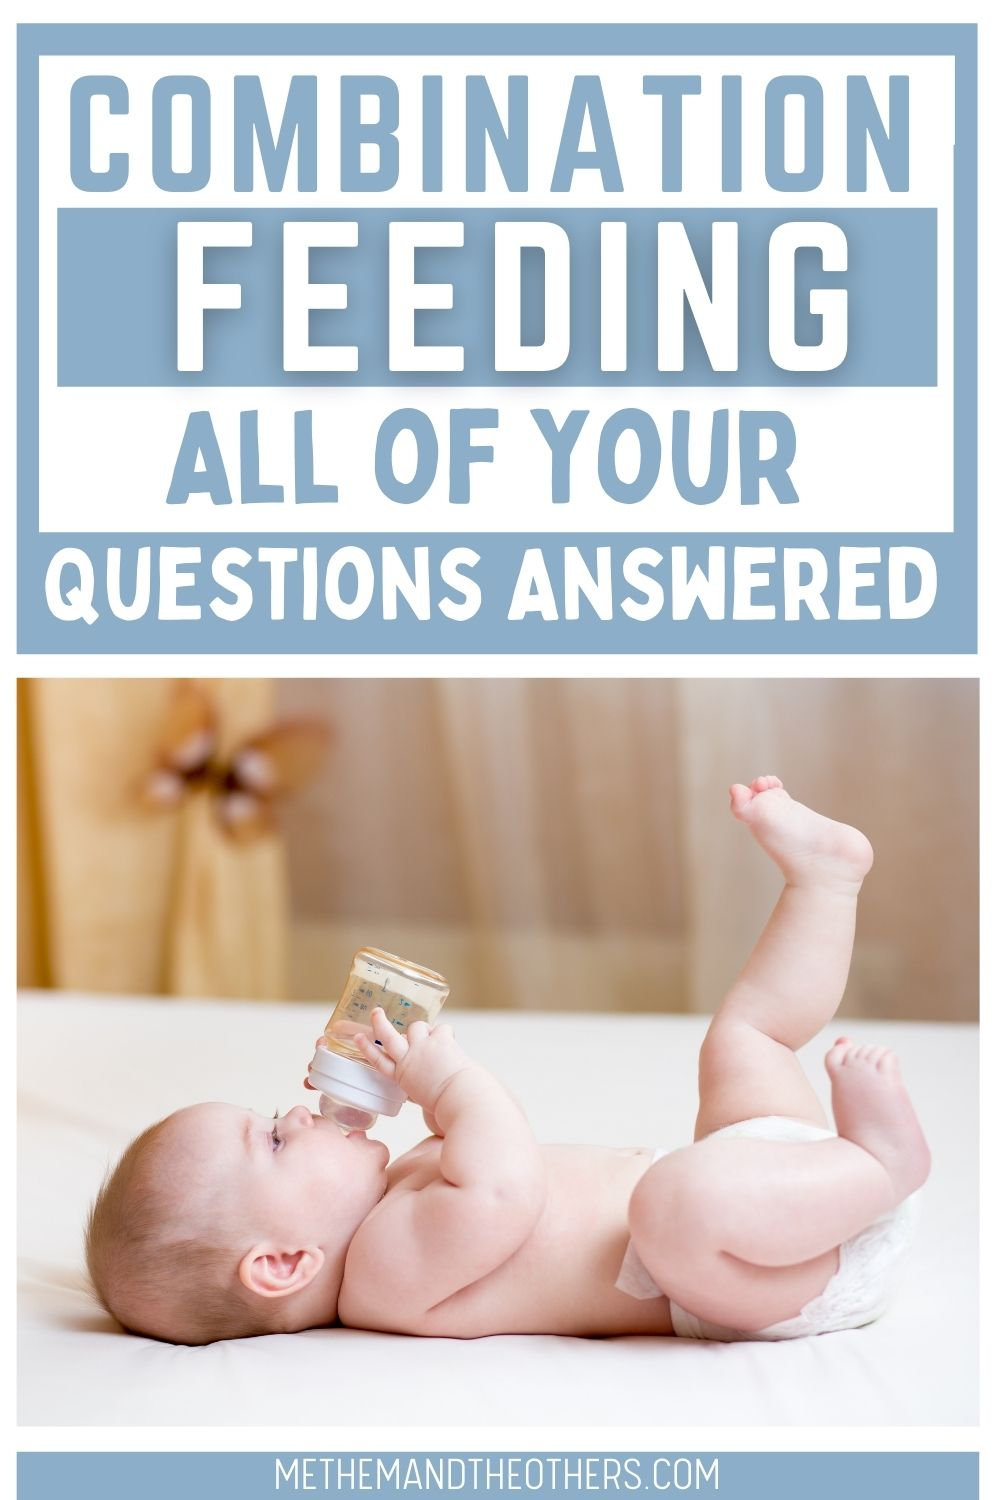 I age of baby laying it's back drinking a bottle. Text reads: start combination feeding: all of your questions answered